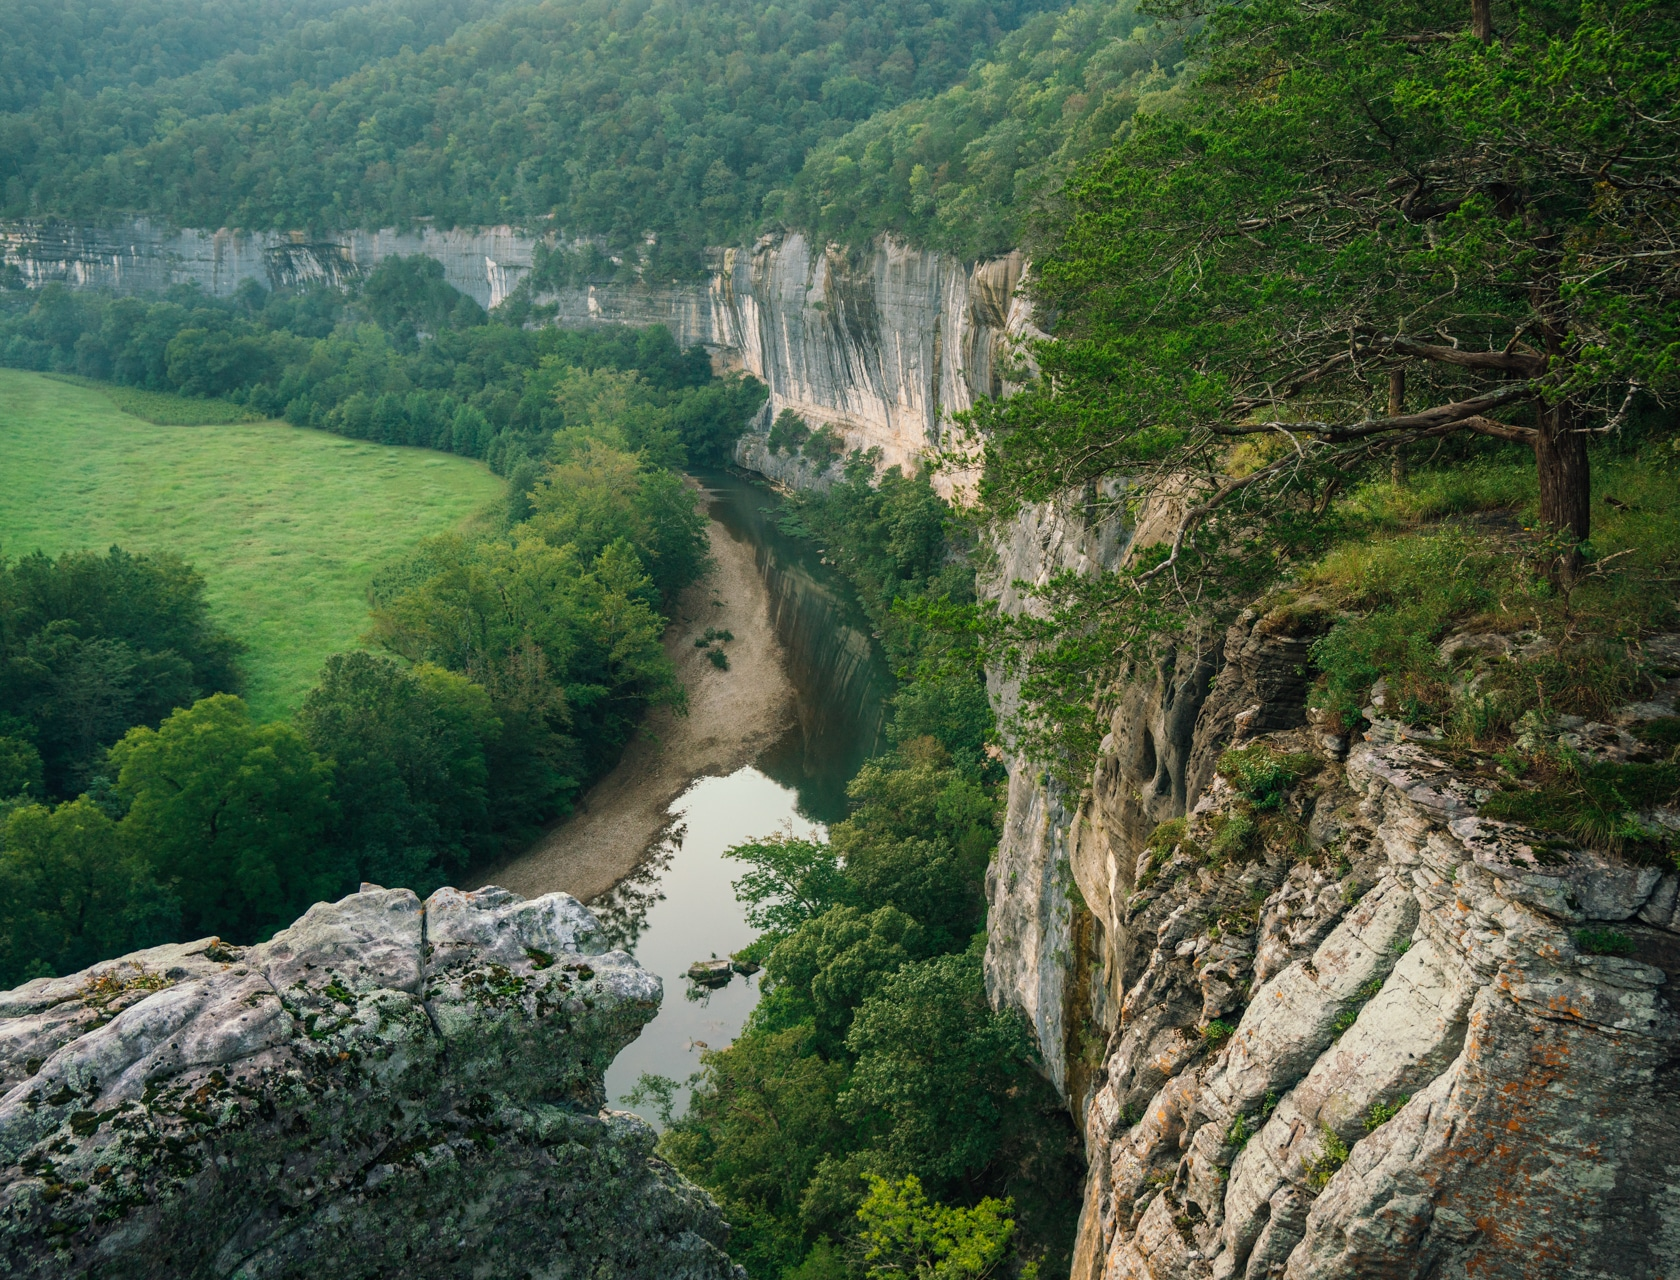 View over Buffalo River from Roark Bluff.